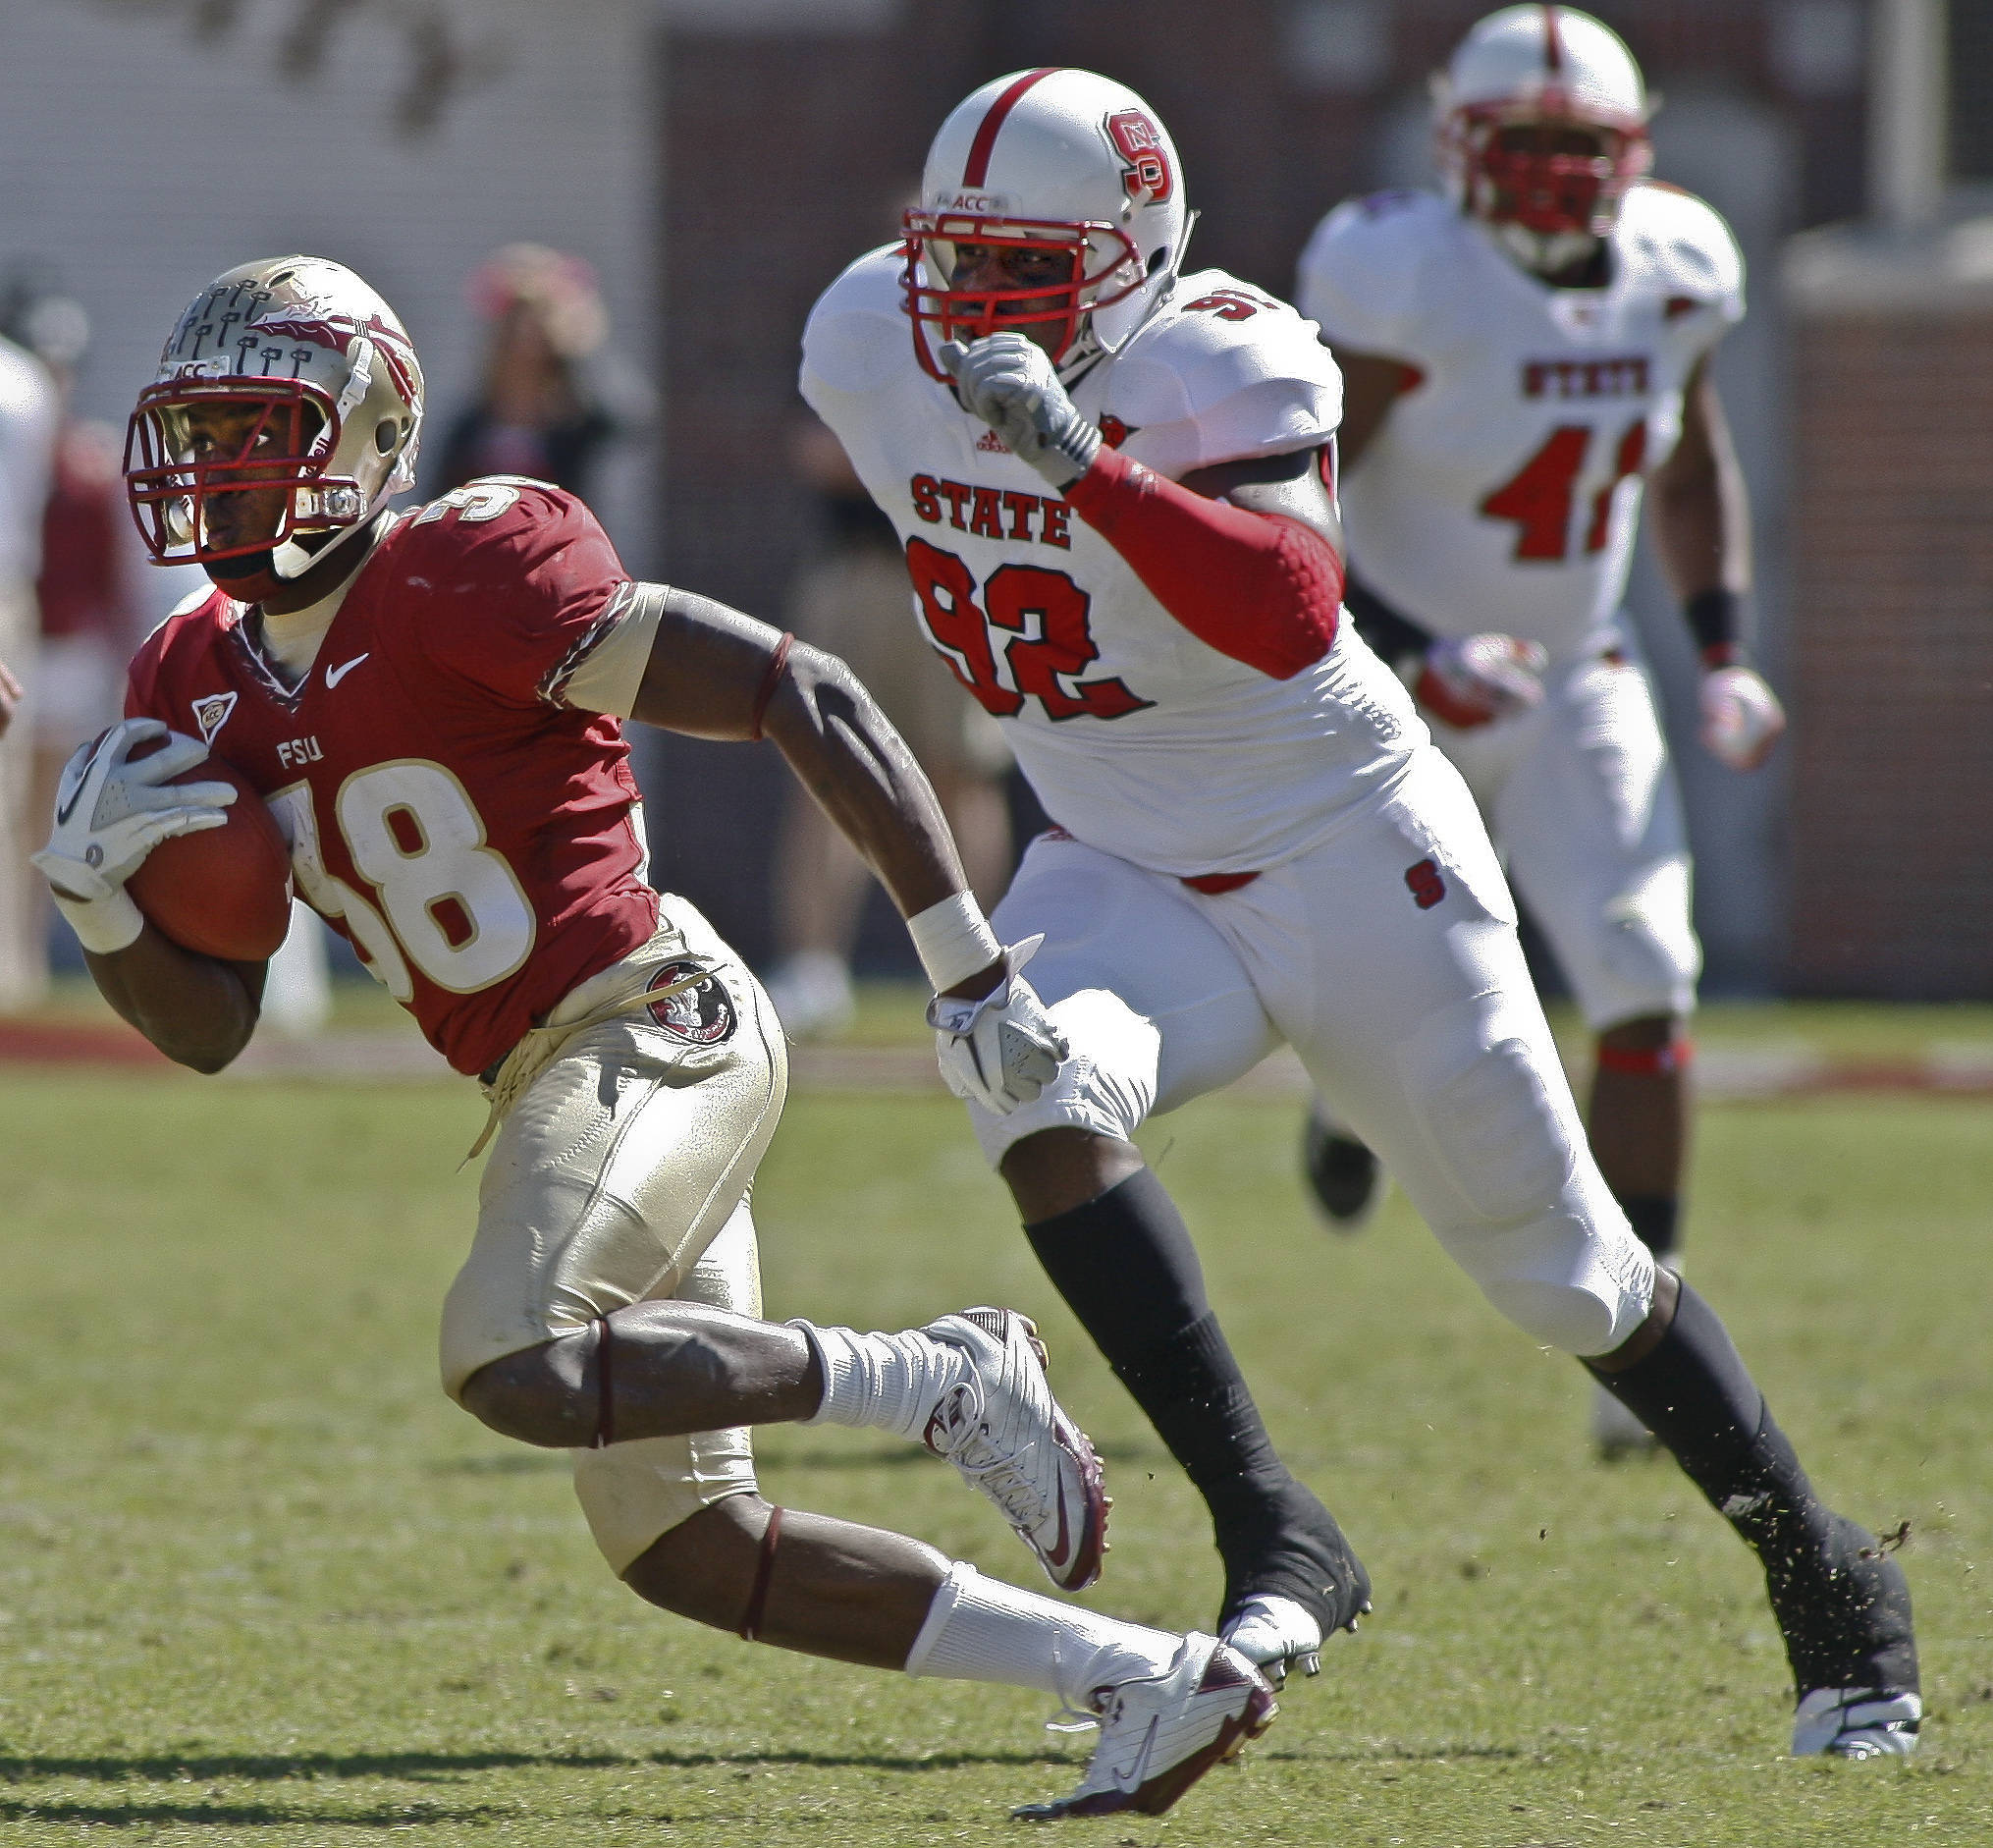 Florida State running back Jermaine Thomas (38) takes off on a 32-yard catch and run as North Carolina State defensive end Darryl Cato-Bishop (92) tries to catch him. (AP Photo/Phil Sears)